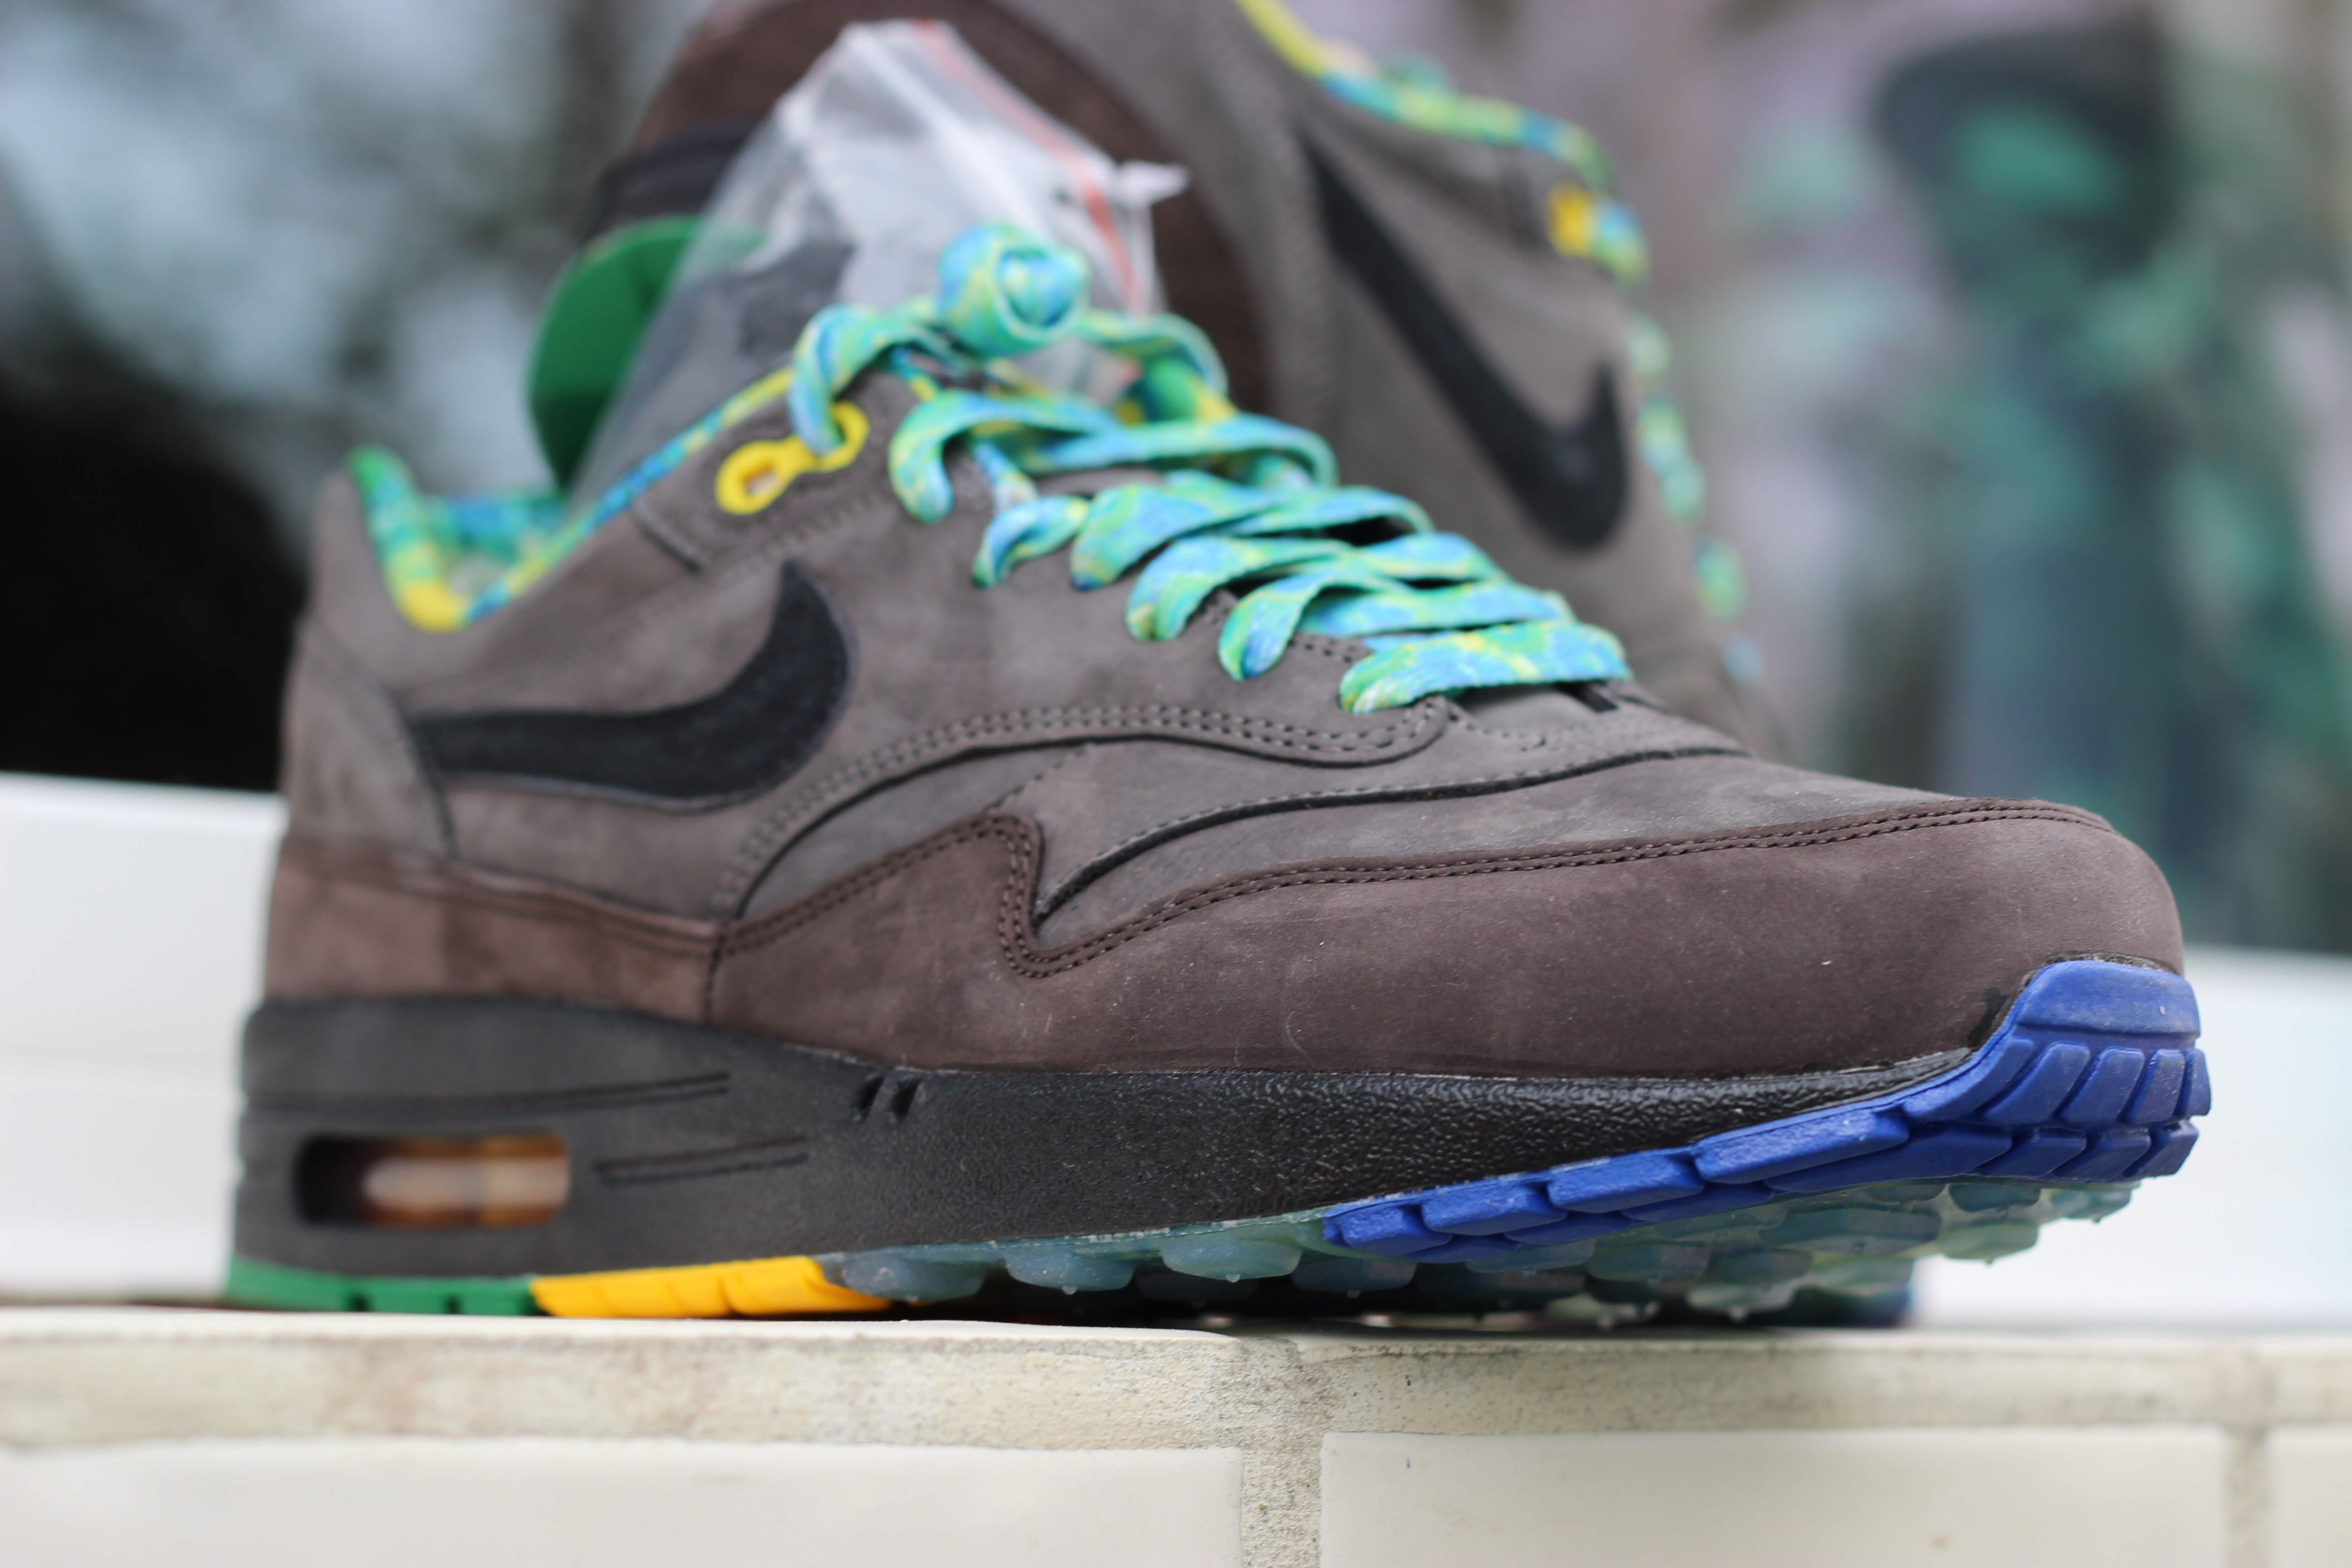 Max 2012 Black Air Month Nike History 76gfby